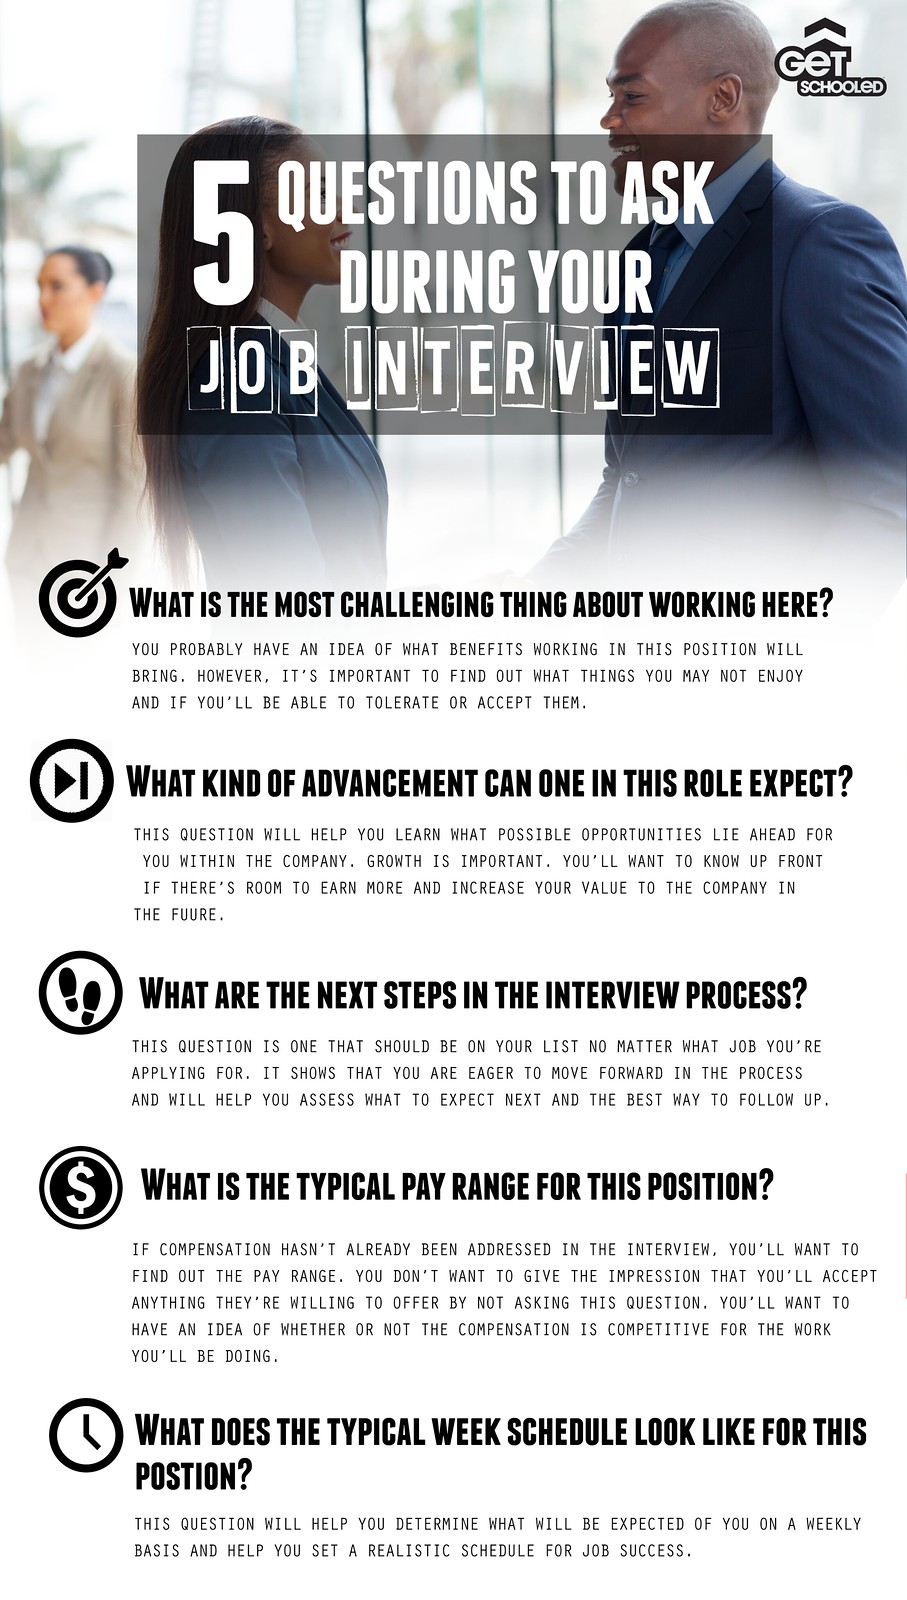 5 questions to ask during your job interview